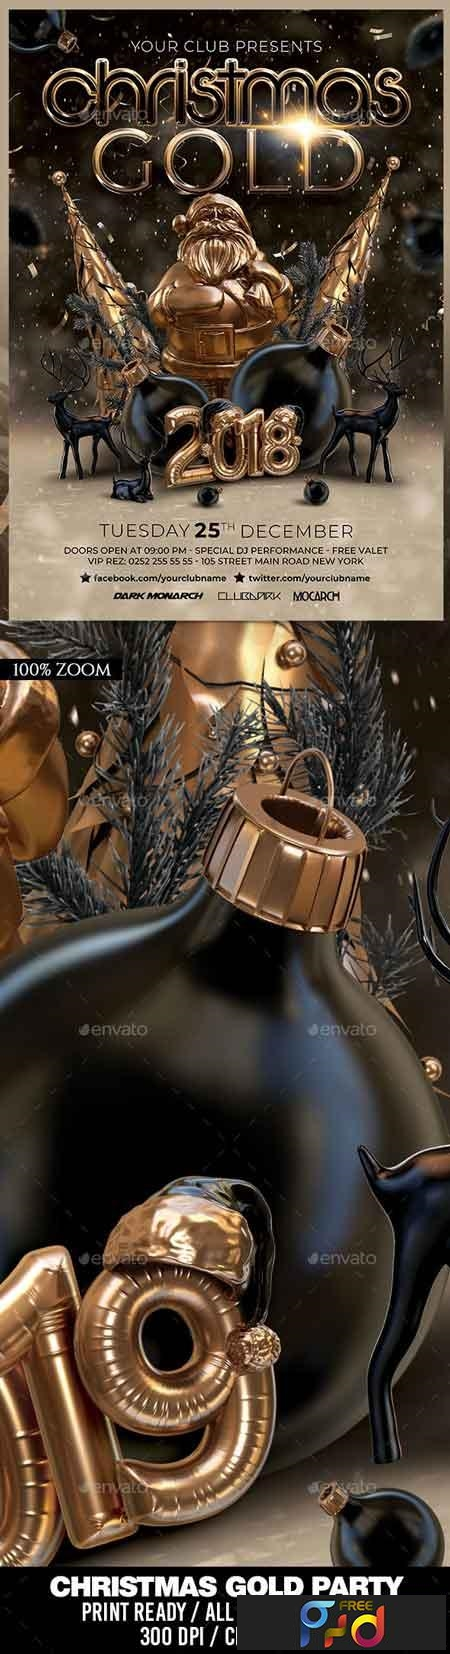 Christmas Gold Party 2018 22751575 1